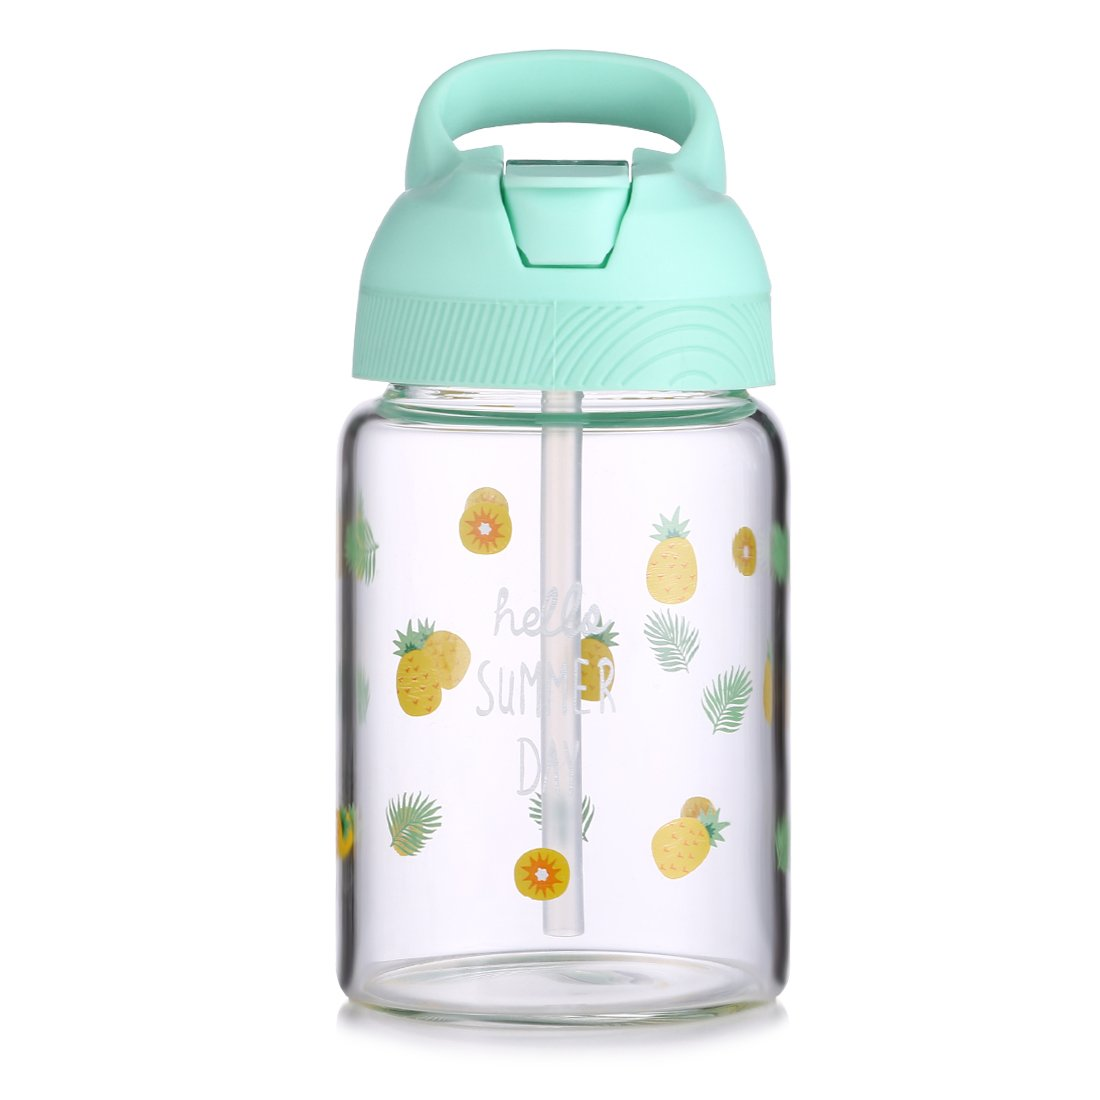 ONEISALL 400ML/14oz Kids/Child/Adult Travel Mug, Straw Bottle, Borosilicate Glass Water Bottle, Tea, Coffee, Juice, Milk, Hot/Iced Drinking Tumbler Cup with Portable Handle/Grip (Green)